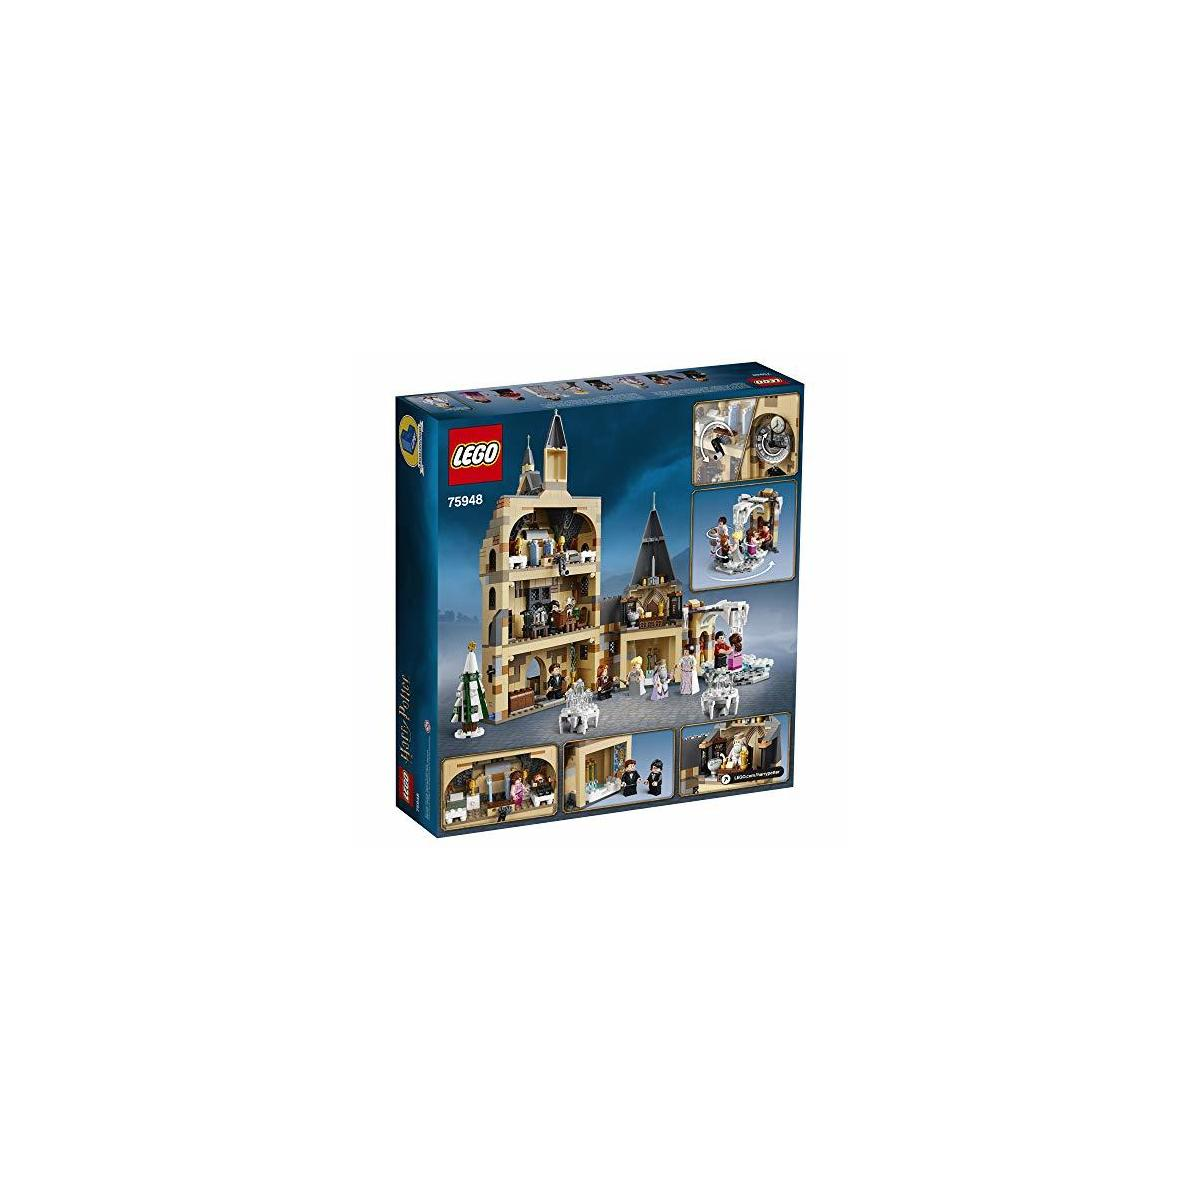 LEGO Harry Potter Hogwarts Clock Tower 75948 Build and Play Tower Set with Harry Potter Minifigures, Popular Harry Potter Gift and Playset with Ron Weasley, Hermione Granger and more (922 Pieces). Overbox